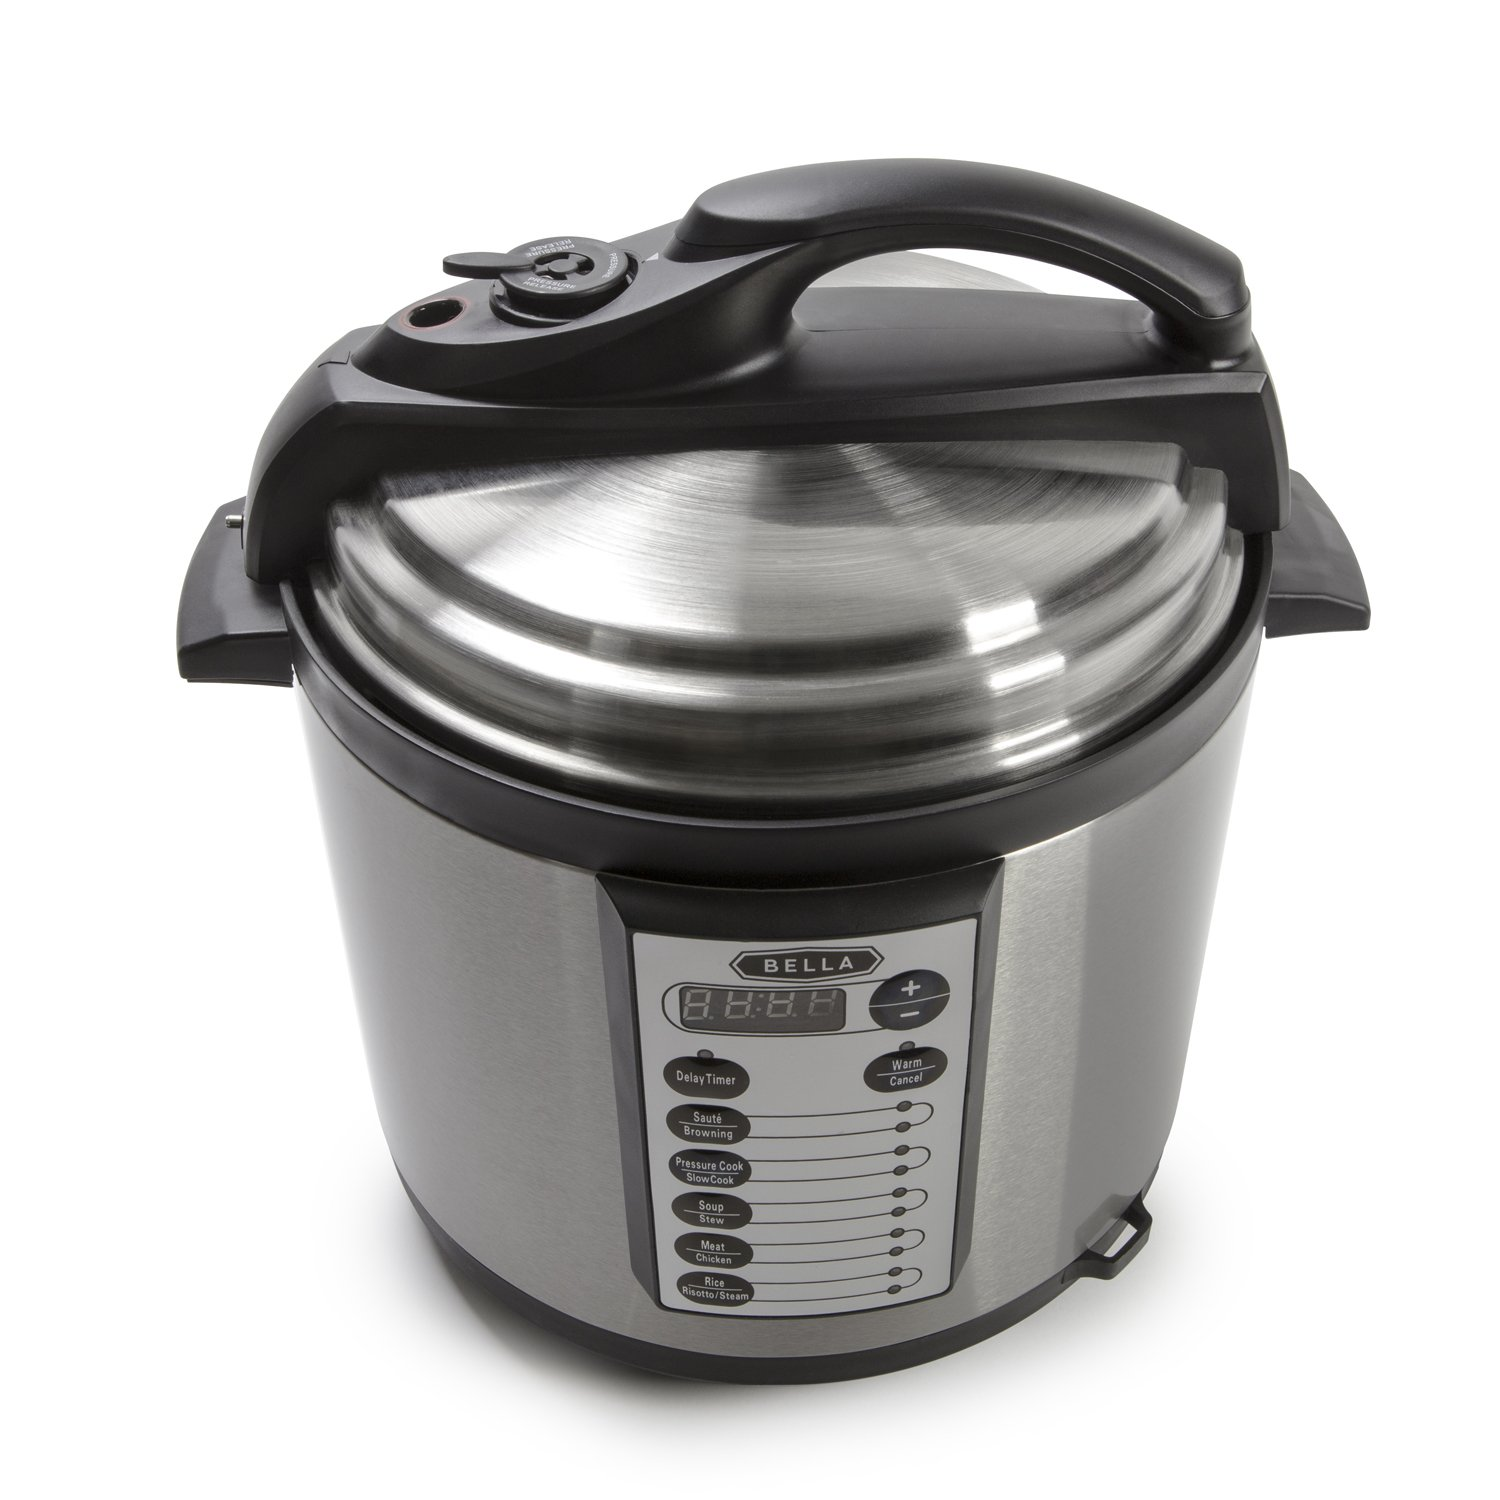 BELLA BLA14467 6 Qt 10-In-1 Multi-Use Programmable Pressure Cooker, Slow Cooker, Rice Cooker, Steamer, Saute, Warmer with Searing and Browning Feature, 1000 Watts by BELLA (Image #2)